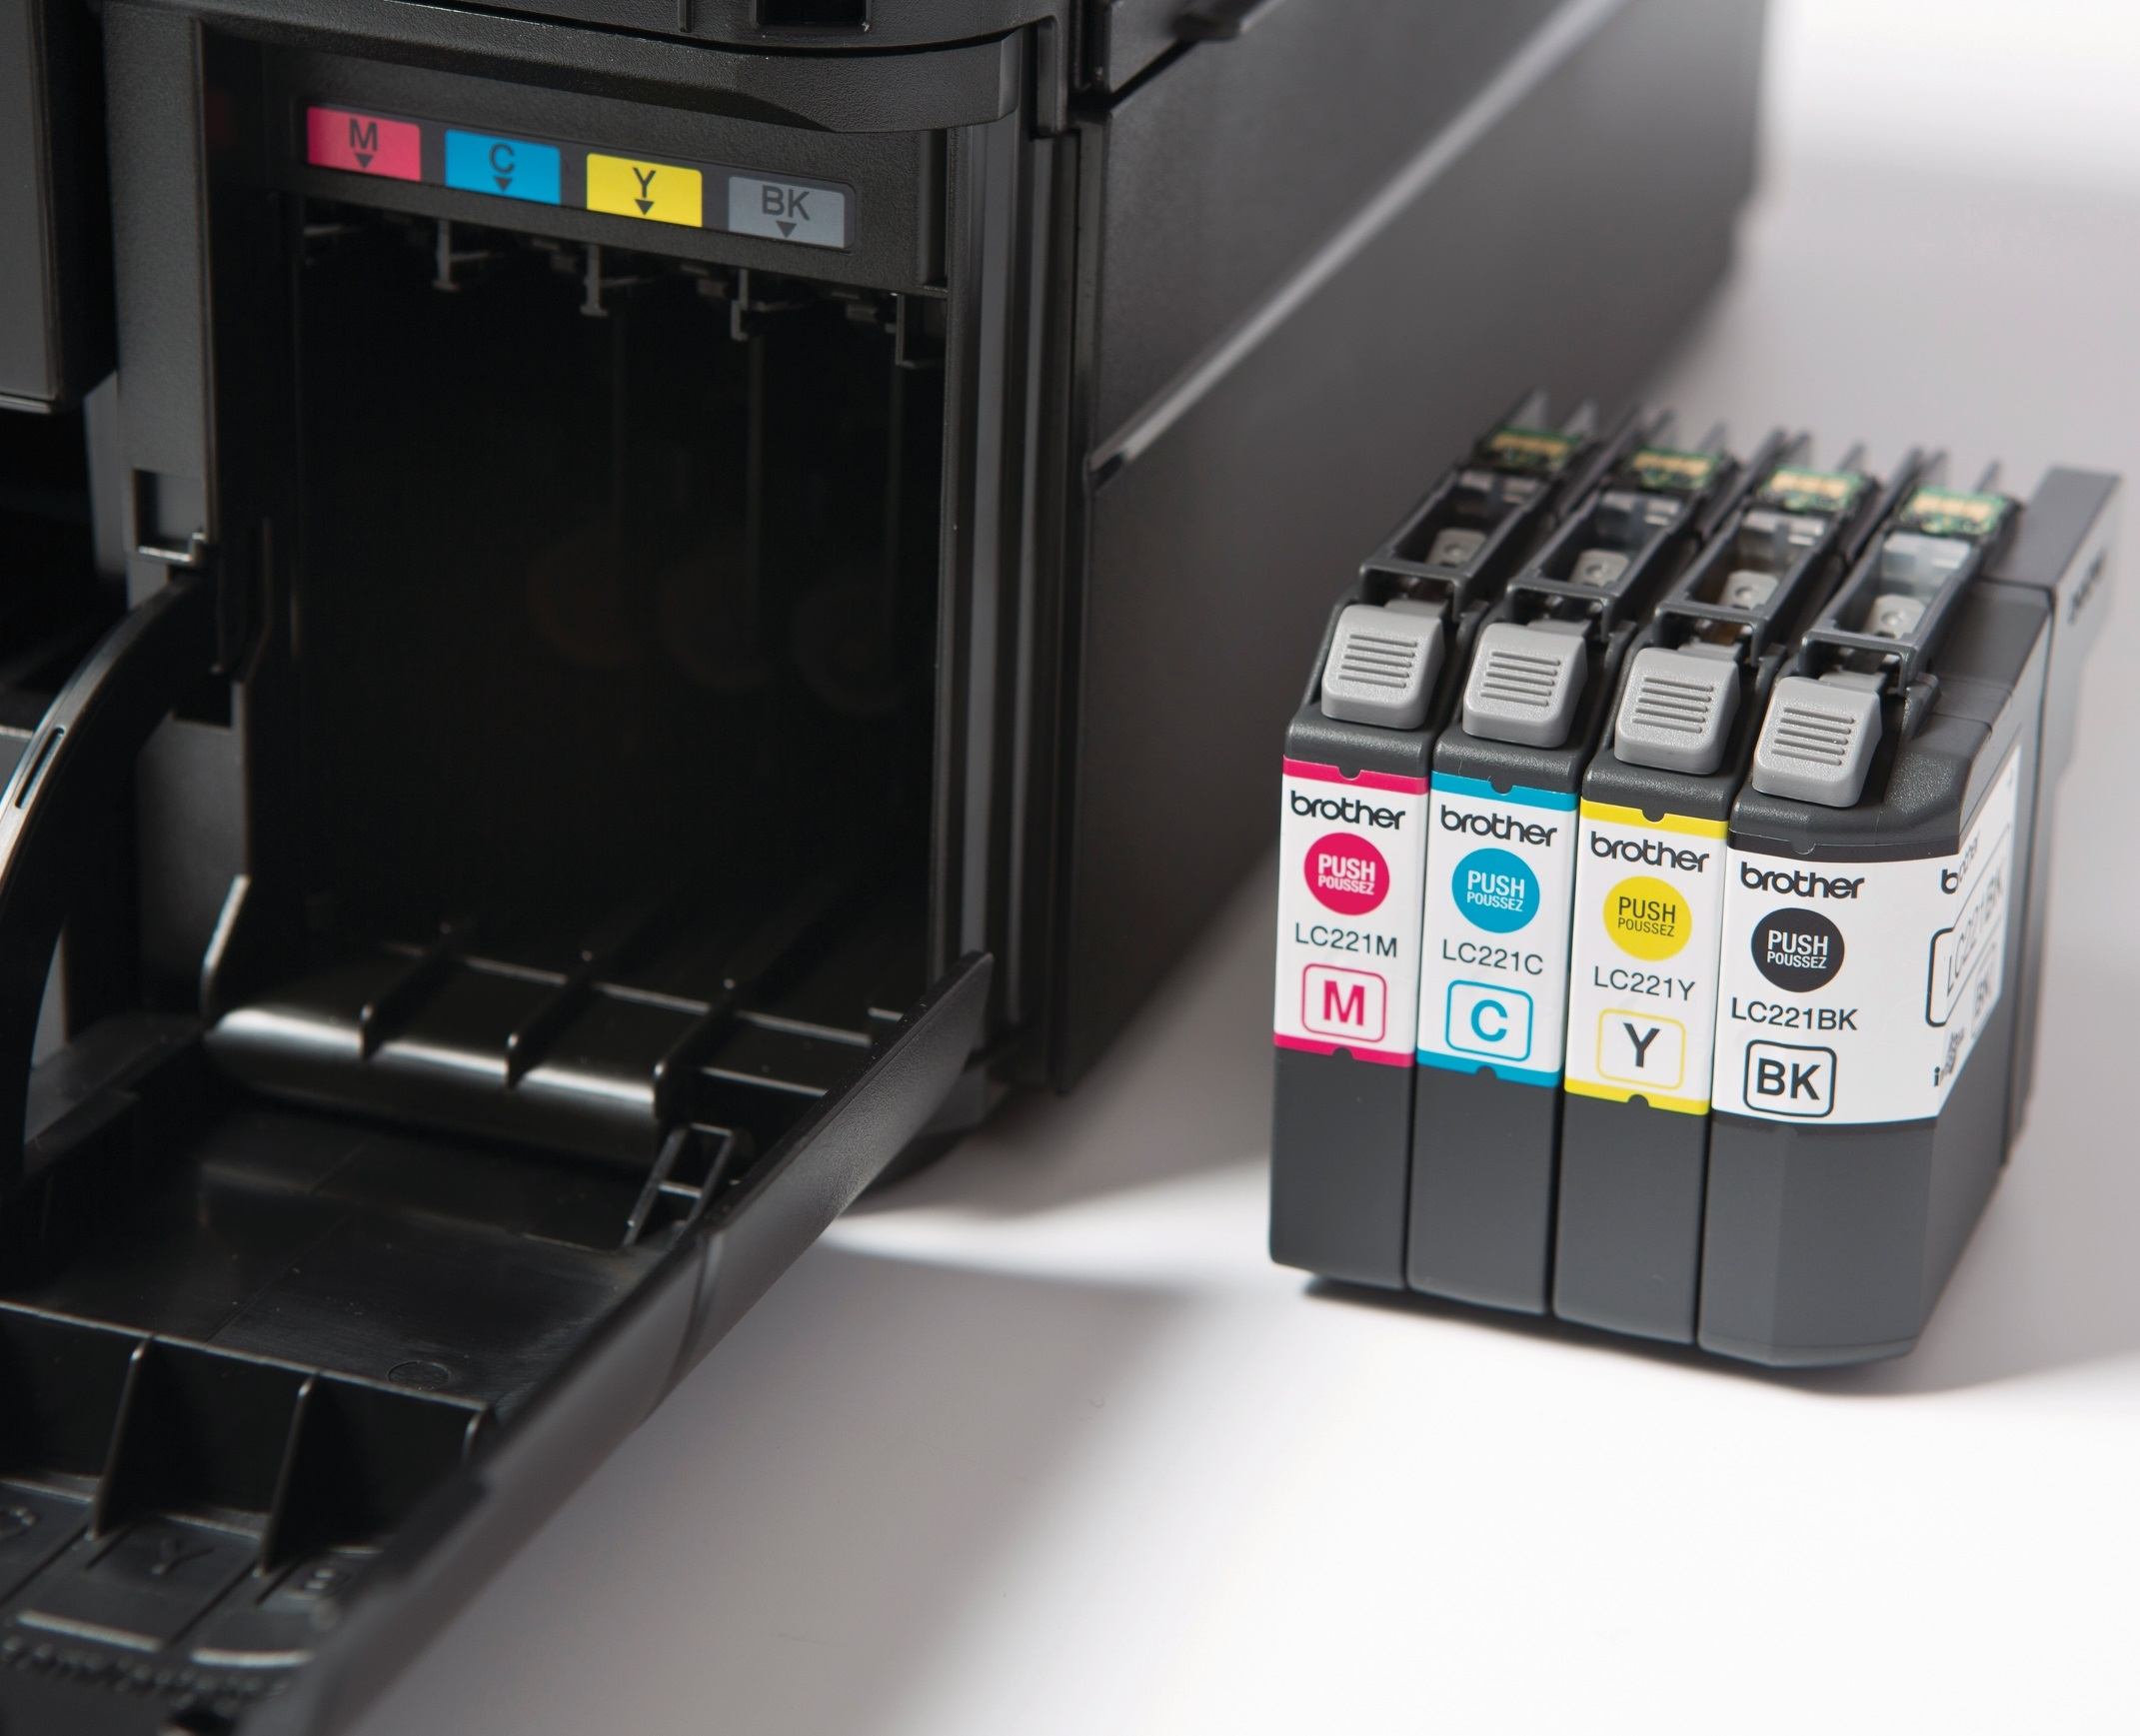 Ink & Toner Auto-Fulfillment Programs. There's never a good time to run out of ink or toner. That's why we make it easy to have Brother Genuine ink or toner automatically shipped directly to .